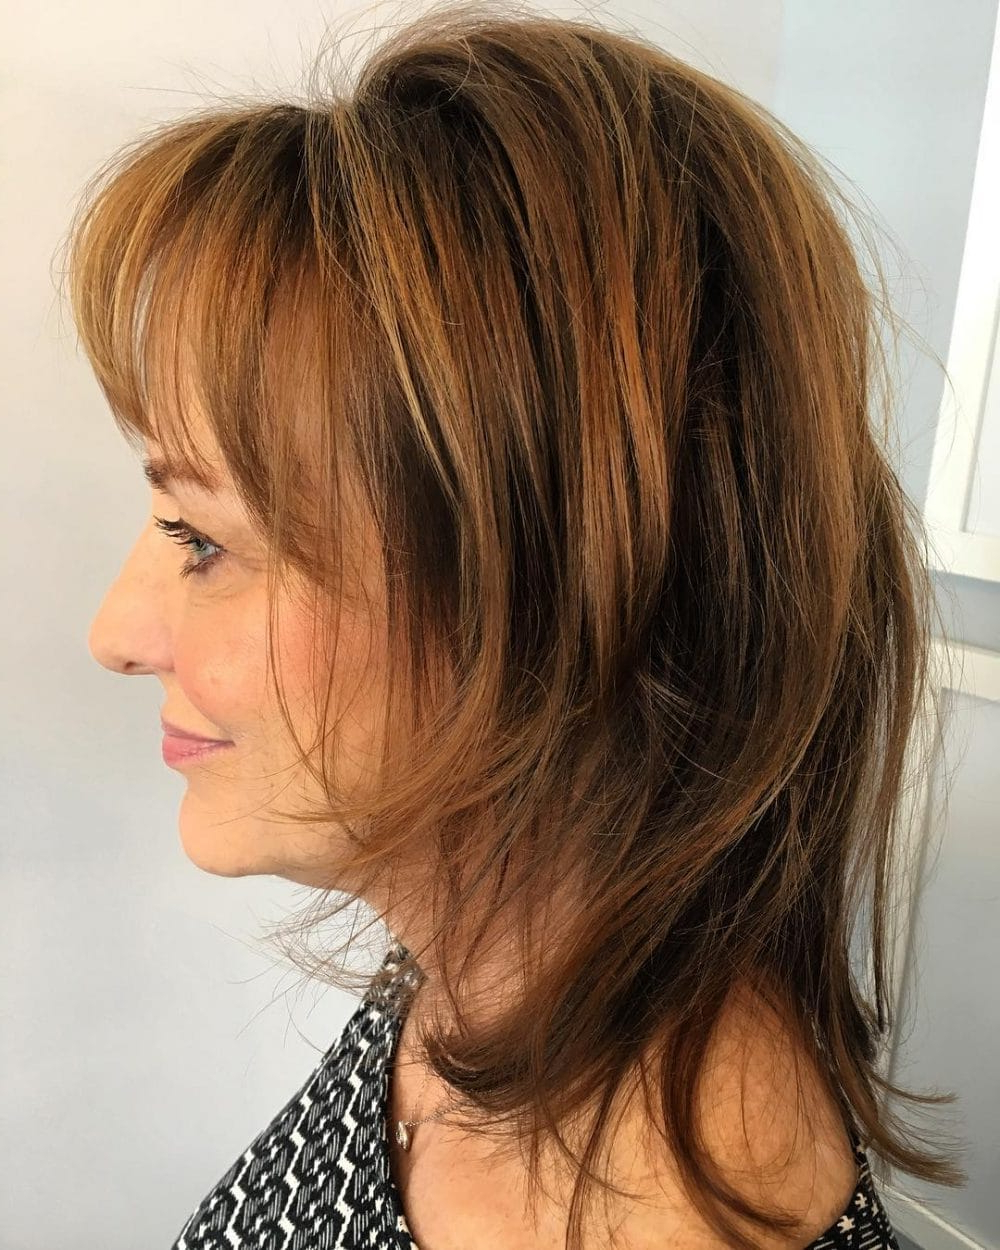 23 Modern Shag Haircuts To Try In 2018 Throughout Short Shaggy Layered Haircut (View 10 of 25)